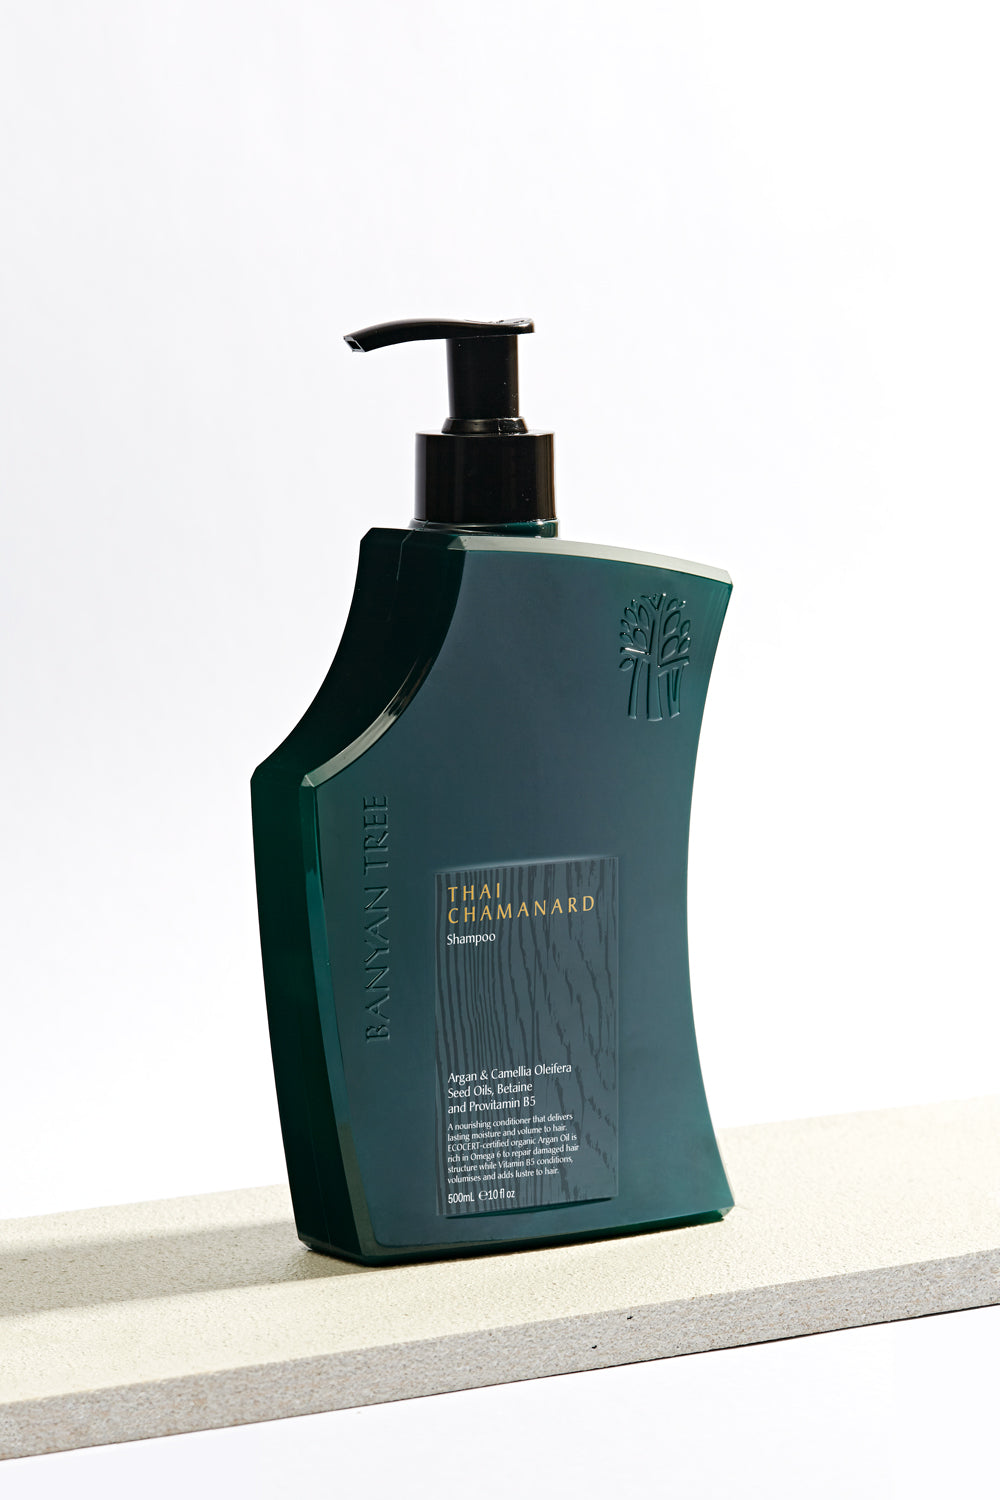 Thai Chamanard Hair Conditioner - Banyan Tree Gallery